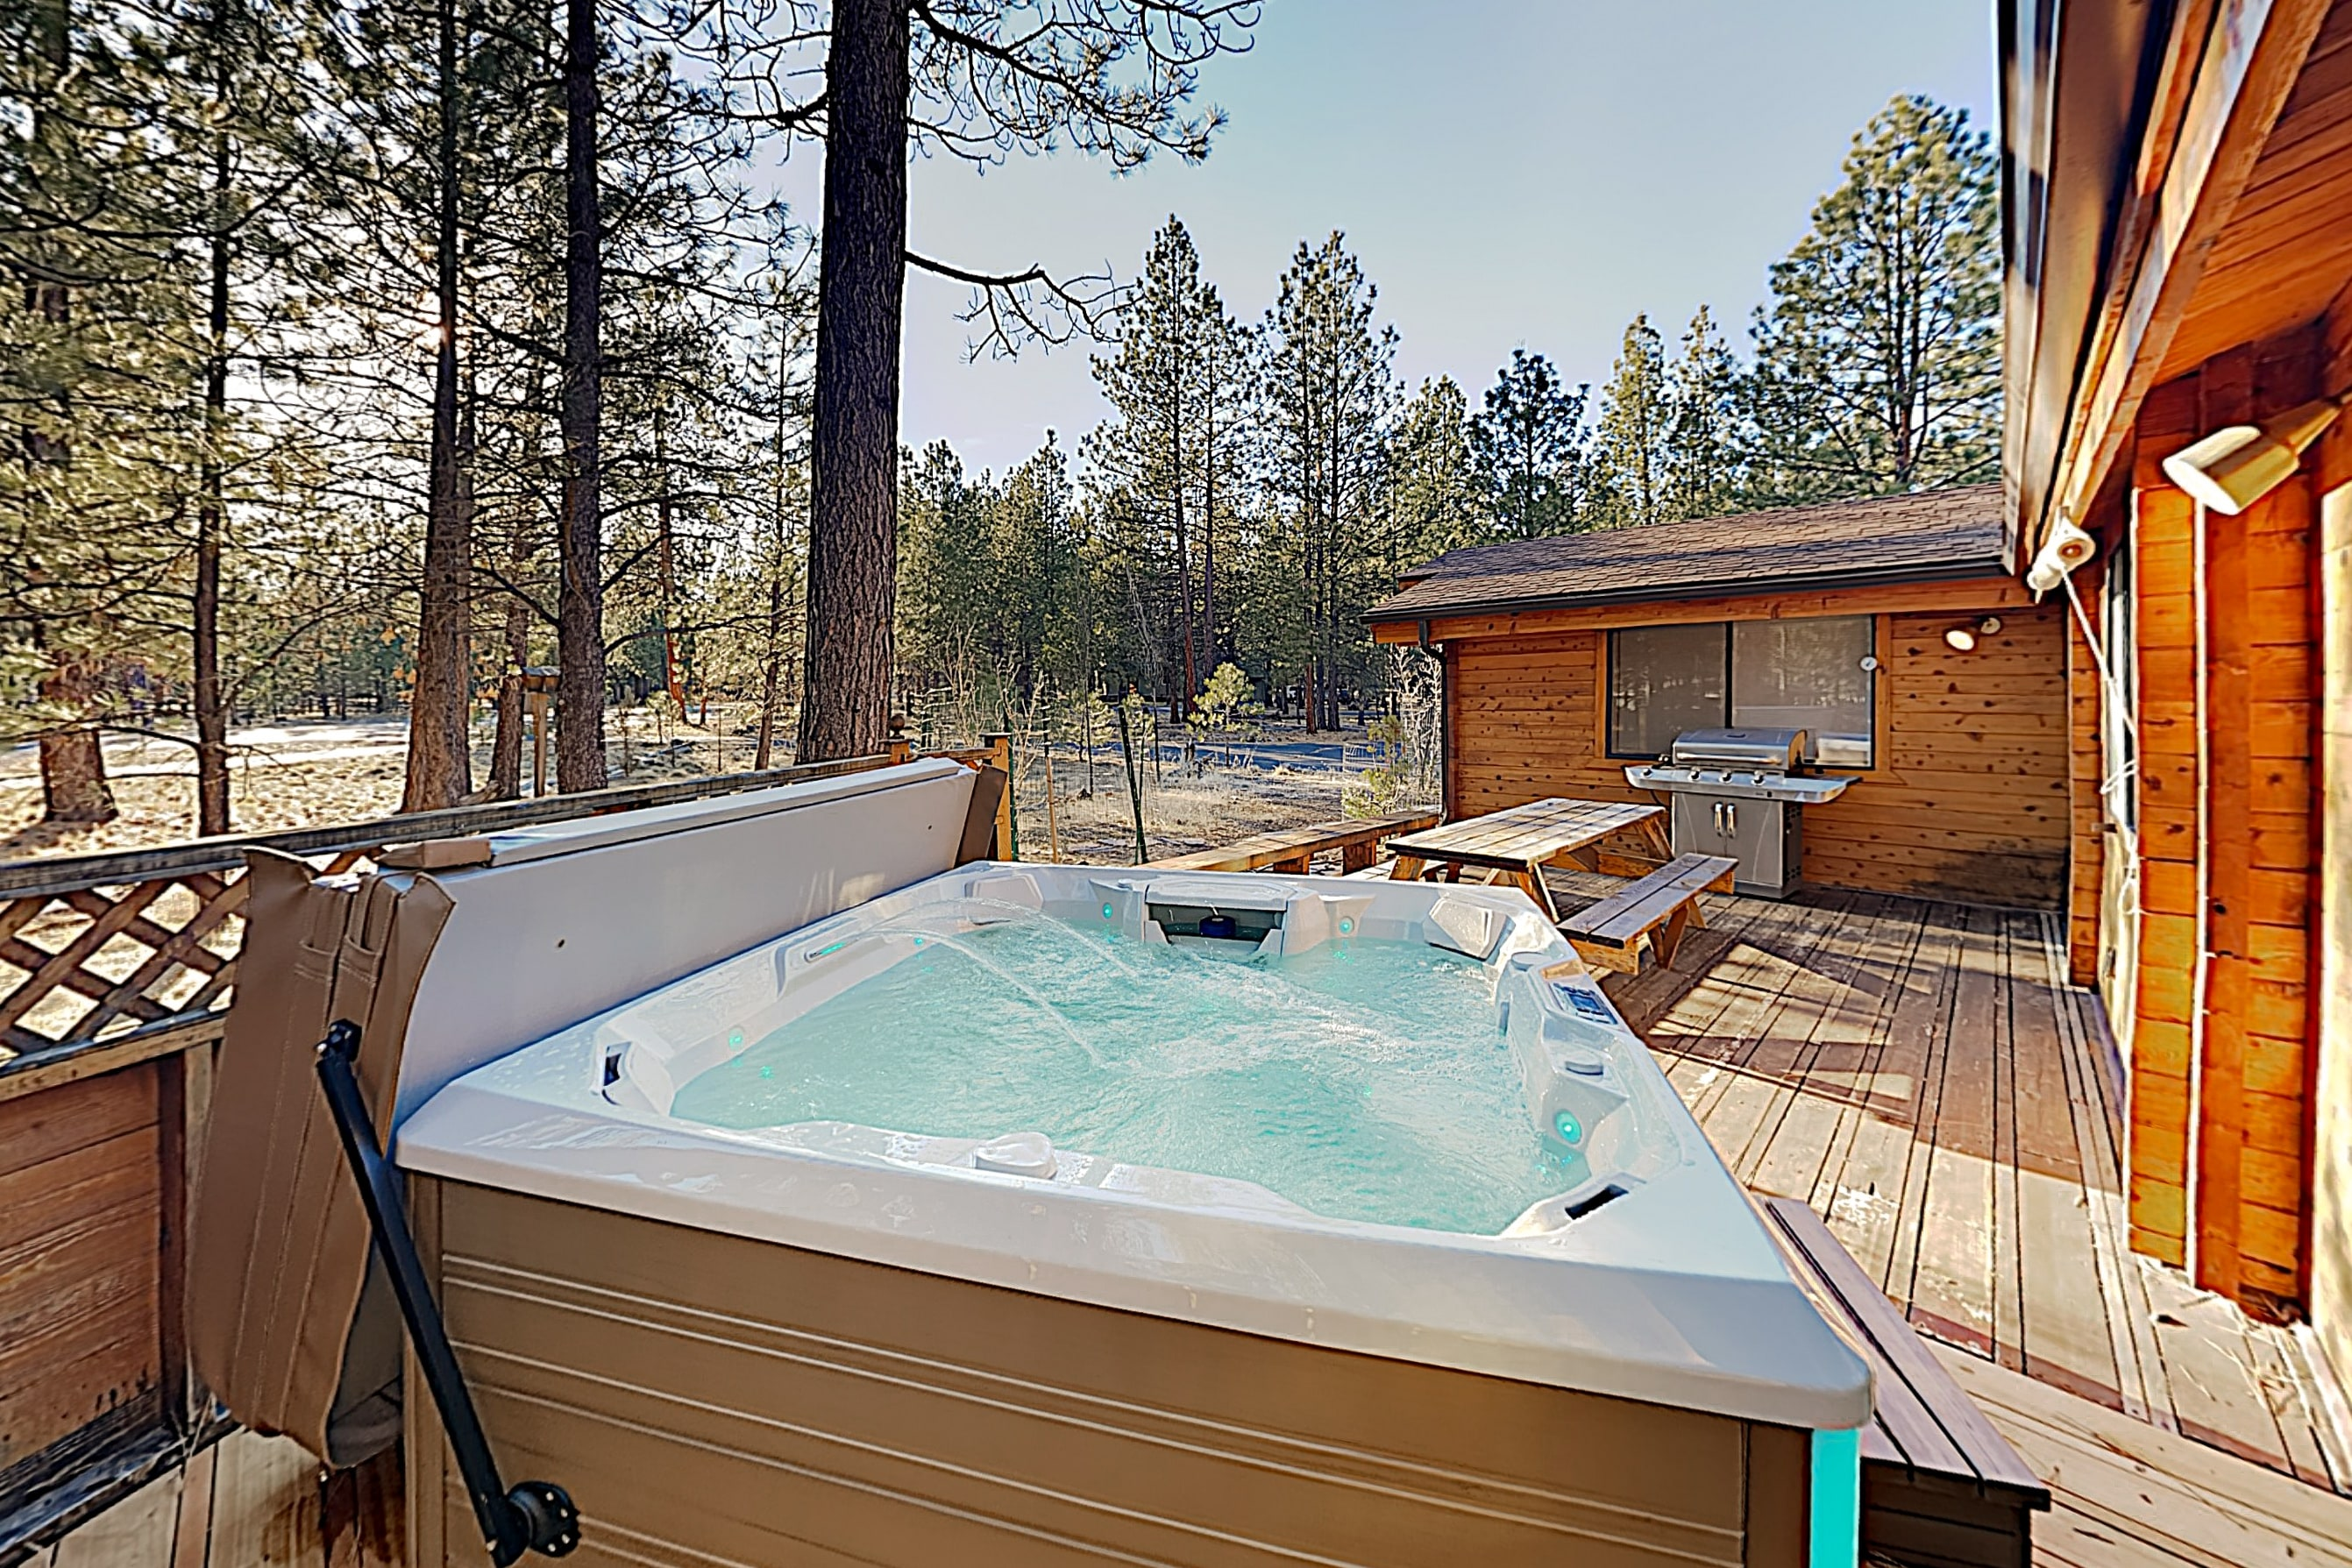 Take relaxing soaks in the brand-new hot tub.